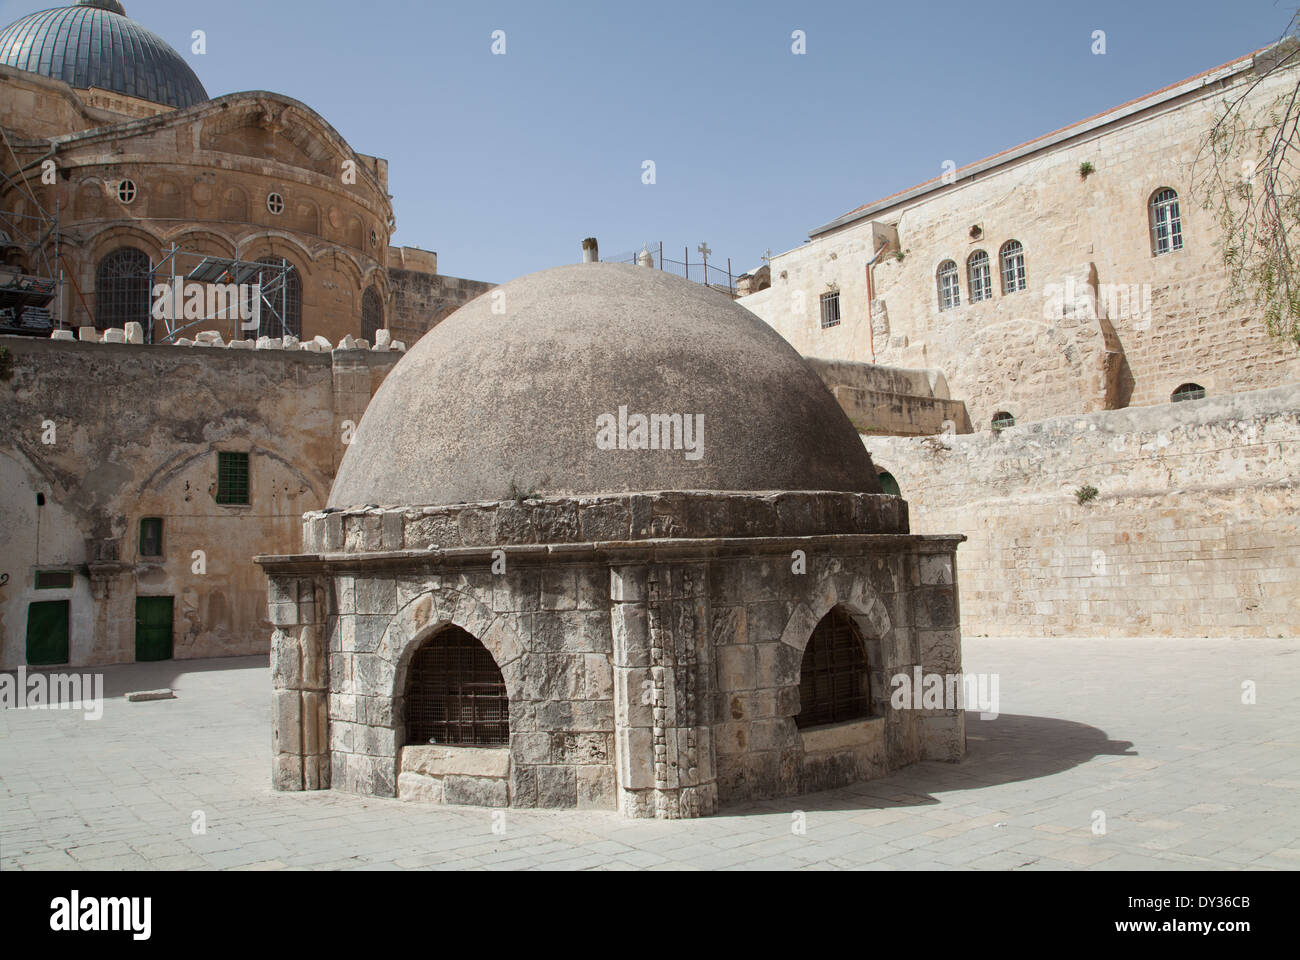 Ethiopian chapel with Church of Holy Sepulchre at Golgotha, Jerusalem, Israel. - Stock Image